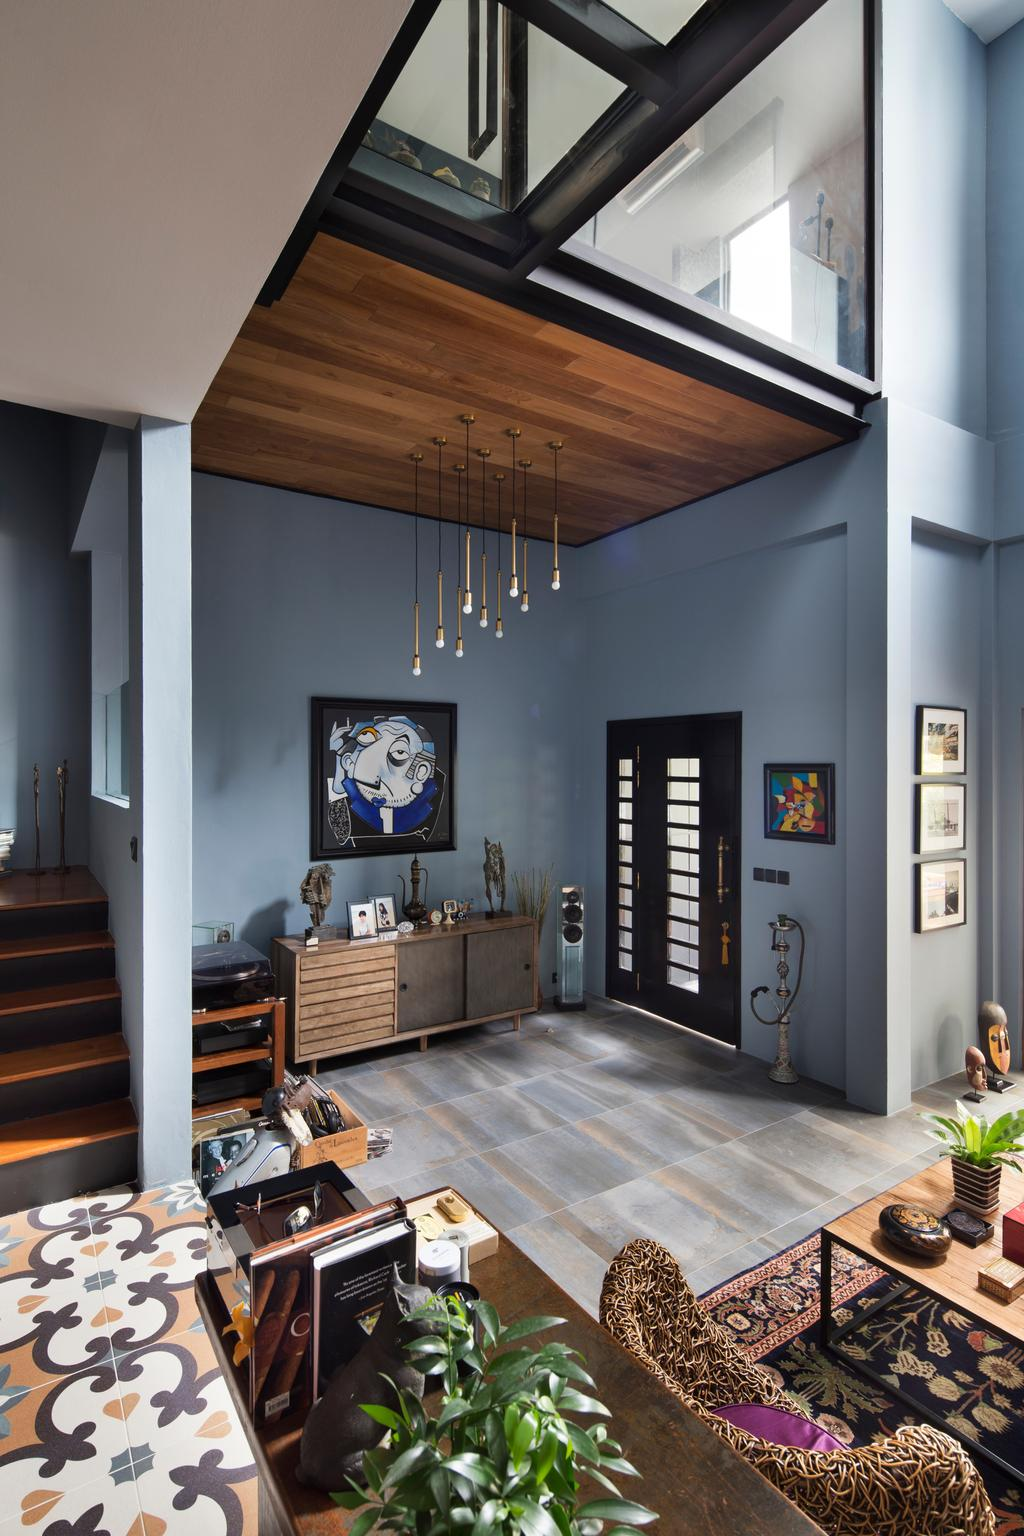 Eclectic, Landed, Eastwood Green, Interior Designer, The Scientist, Electronics, Entertainment Center, Home Theater, Banister, Handrail, Staircase